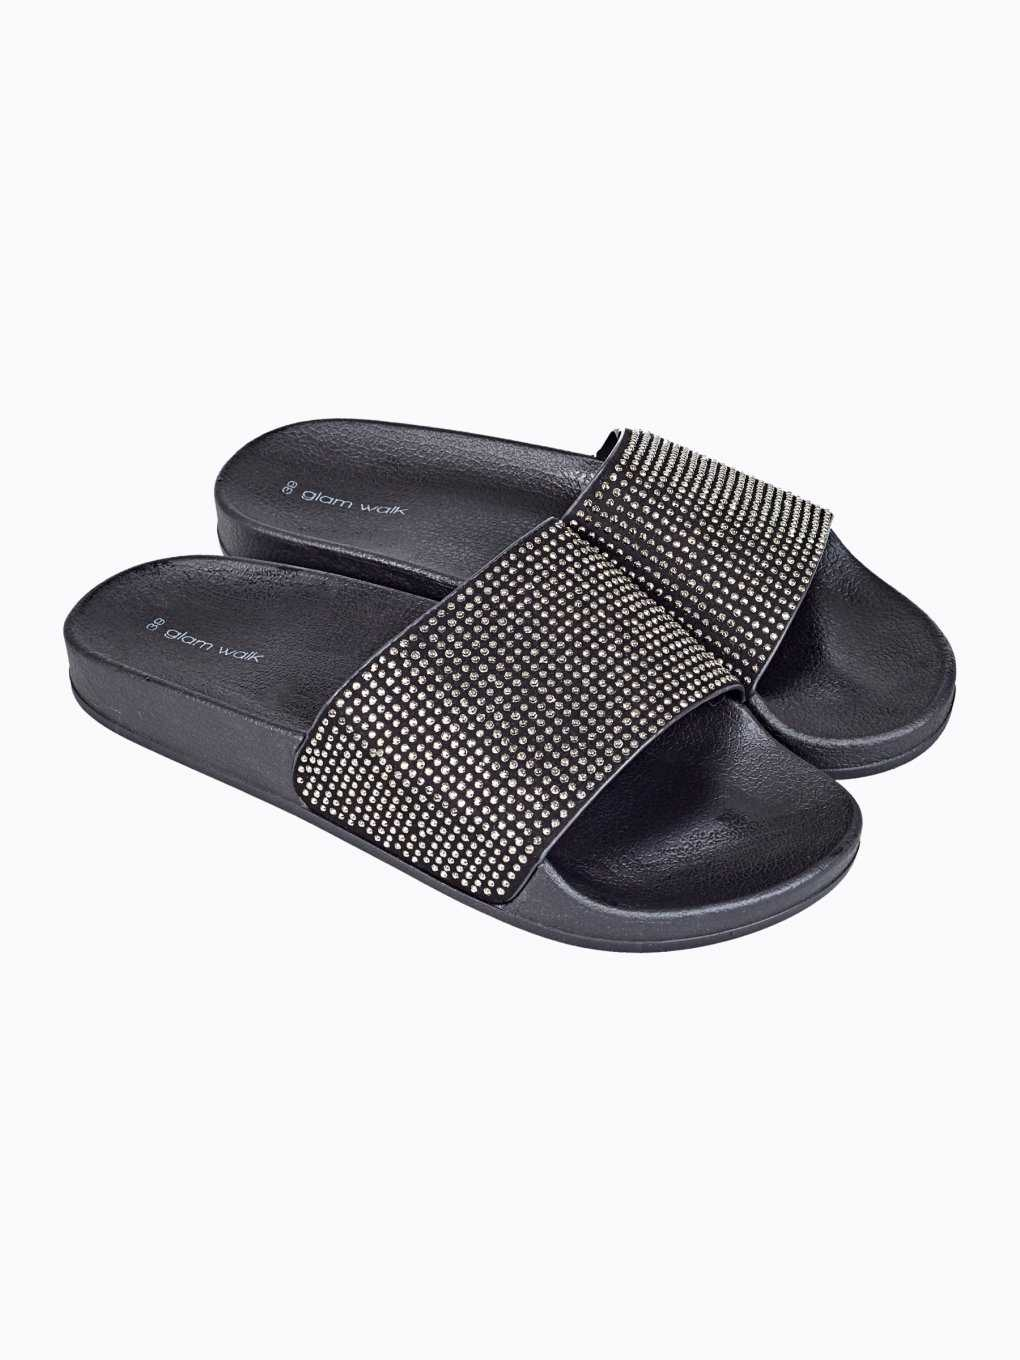 Stone-embellished slides